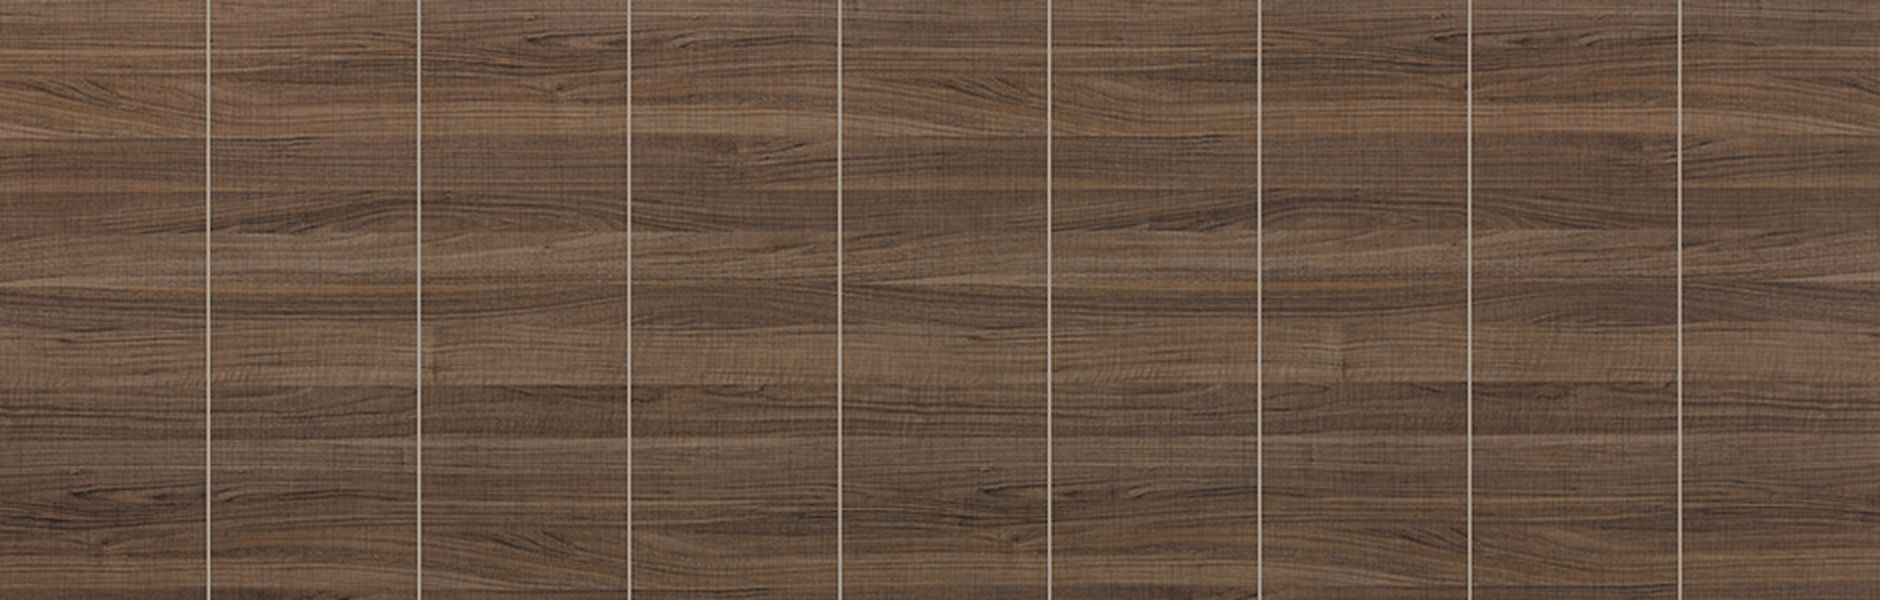 Фото 2 - Декоративные панели Sibu WoodLine nutwood country